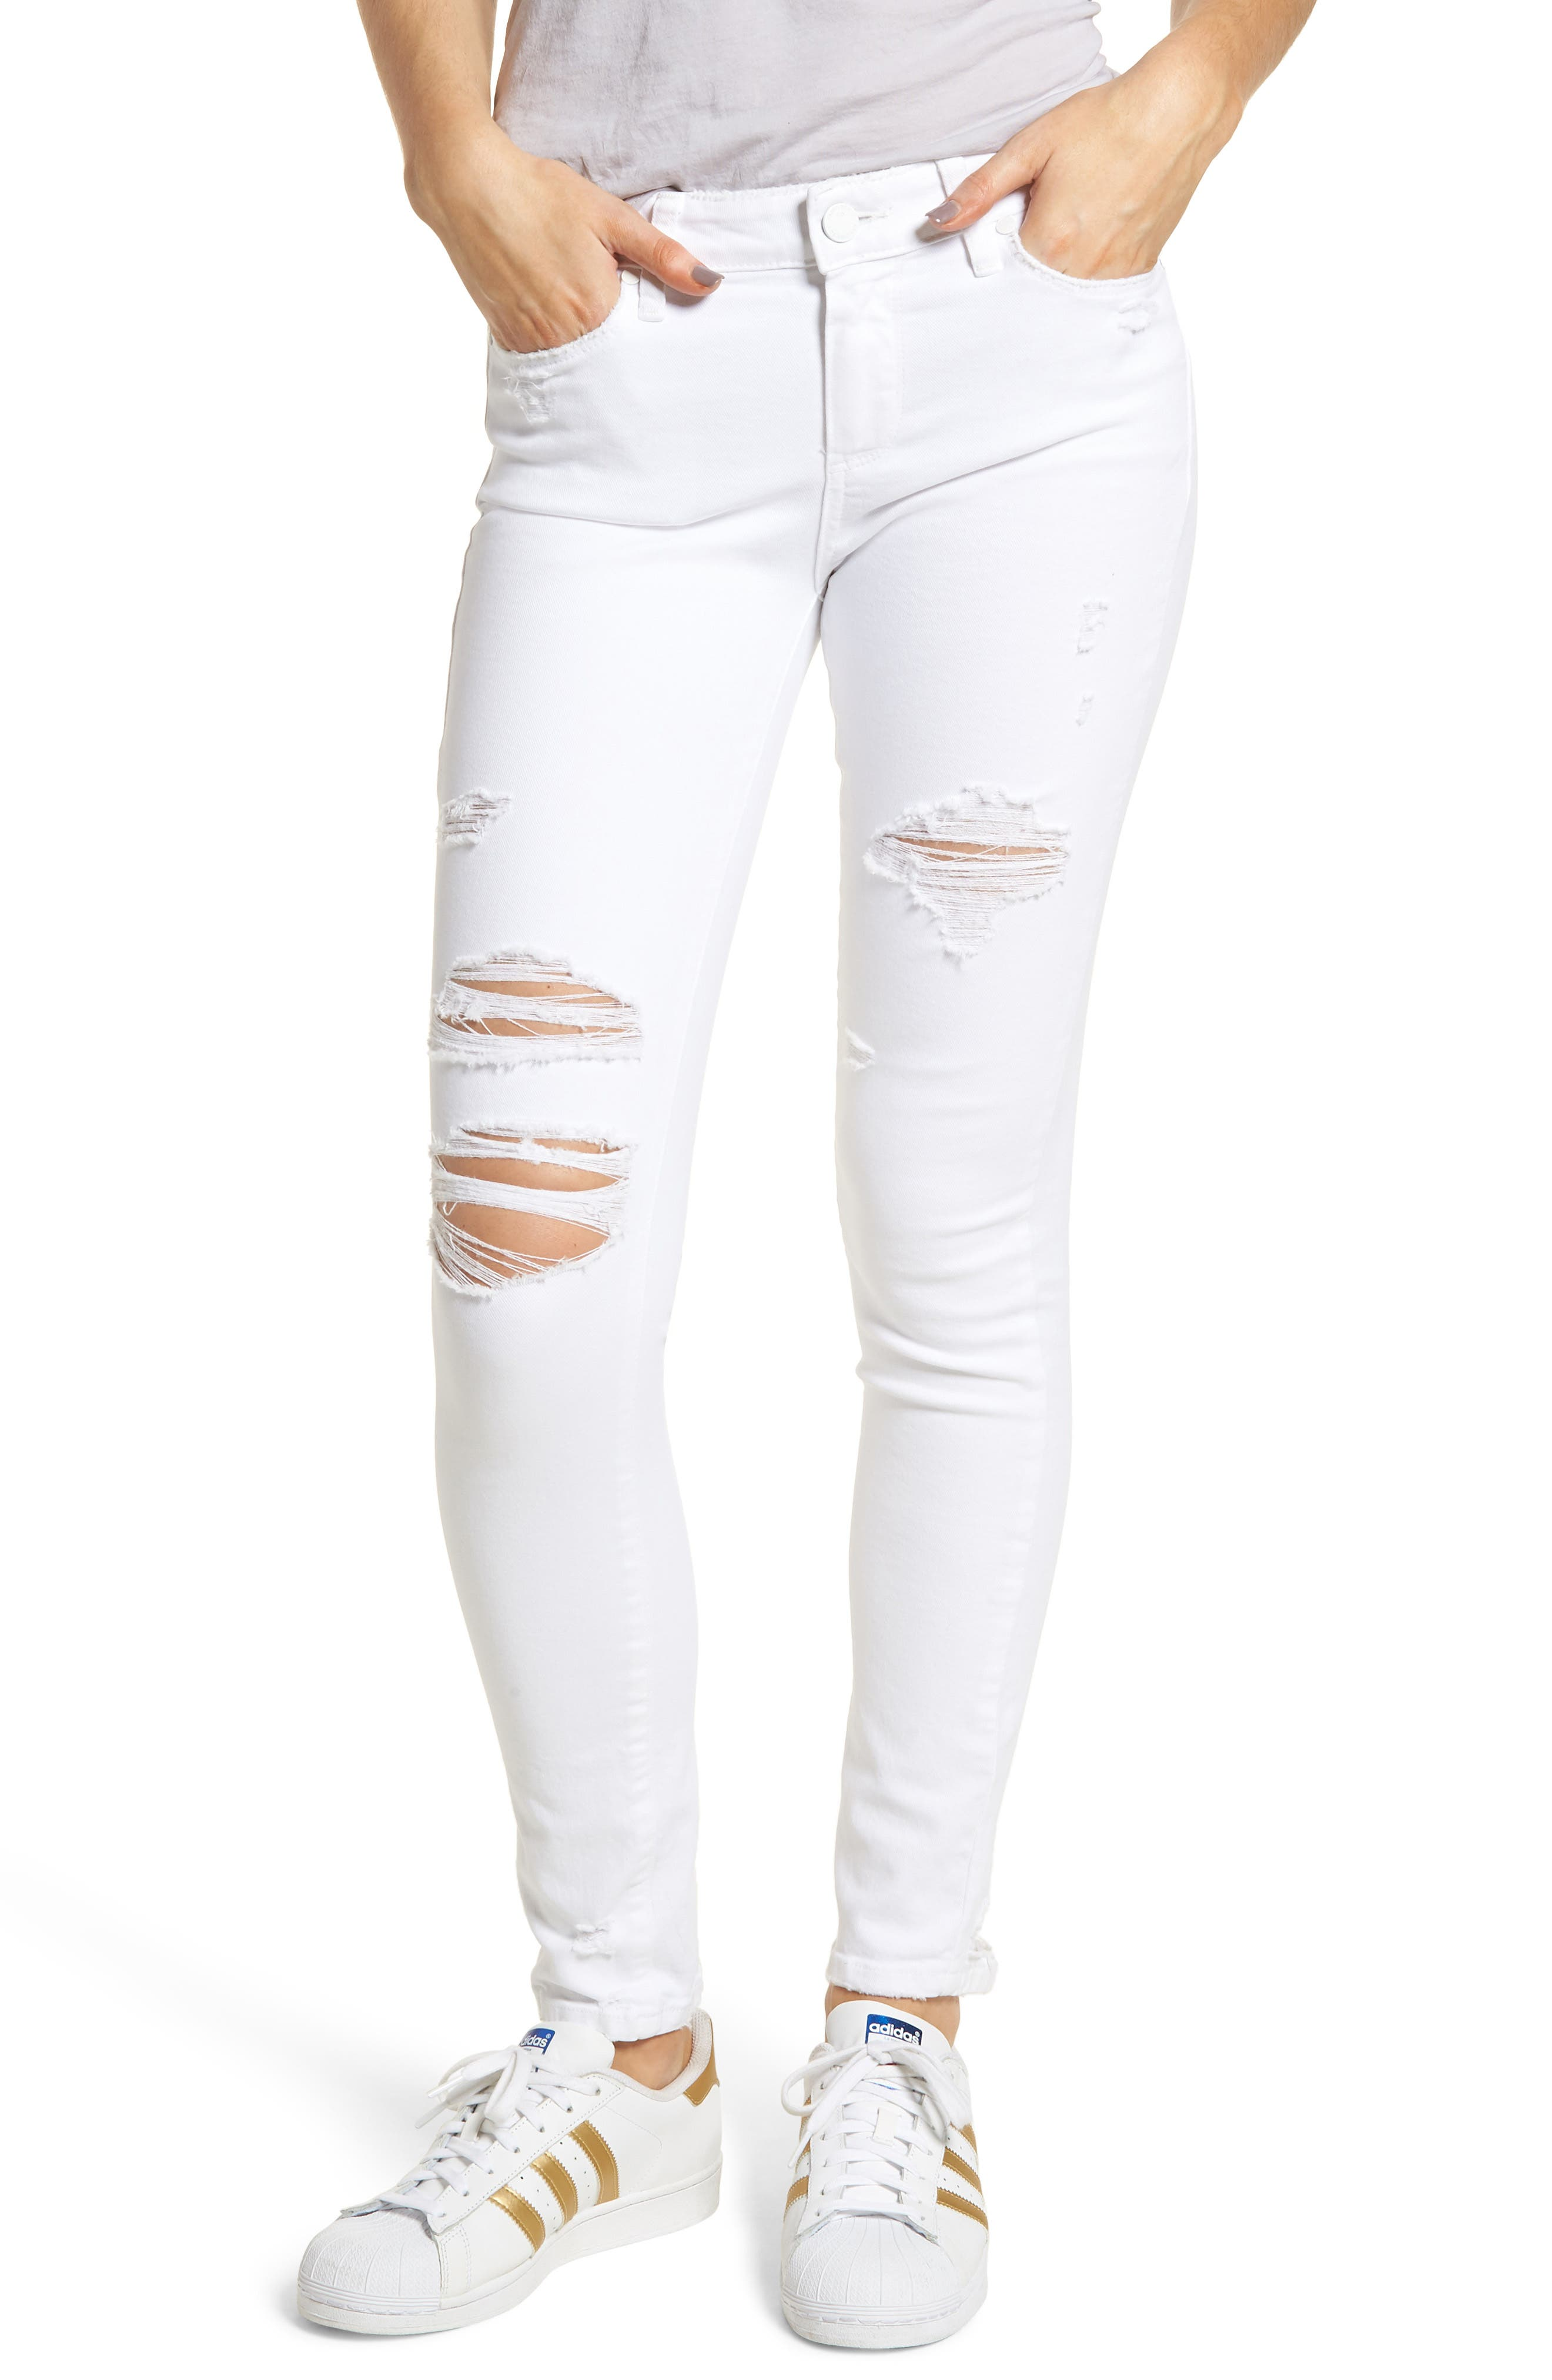 Verdugo Ripped Ultra Skinny Jeans,                         Main,                         color, 100